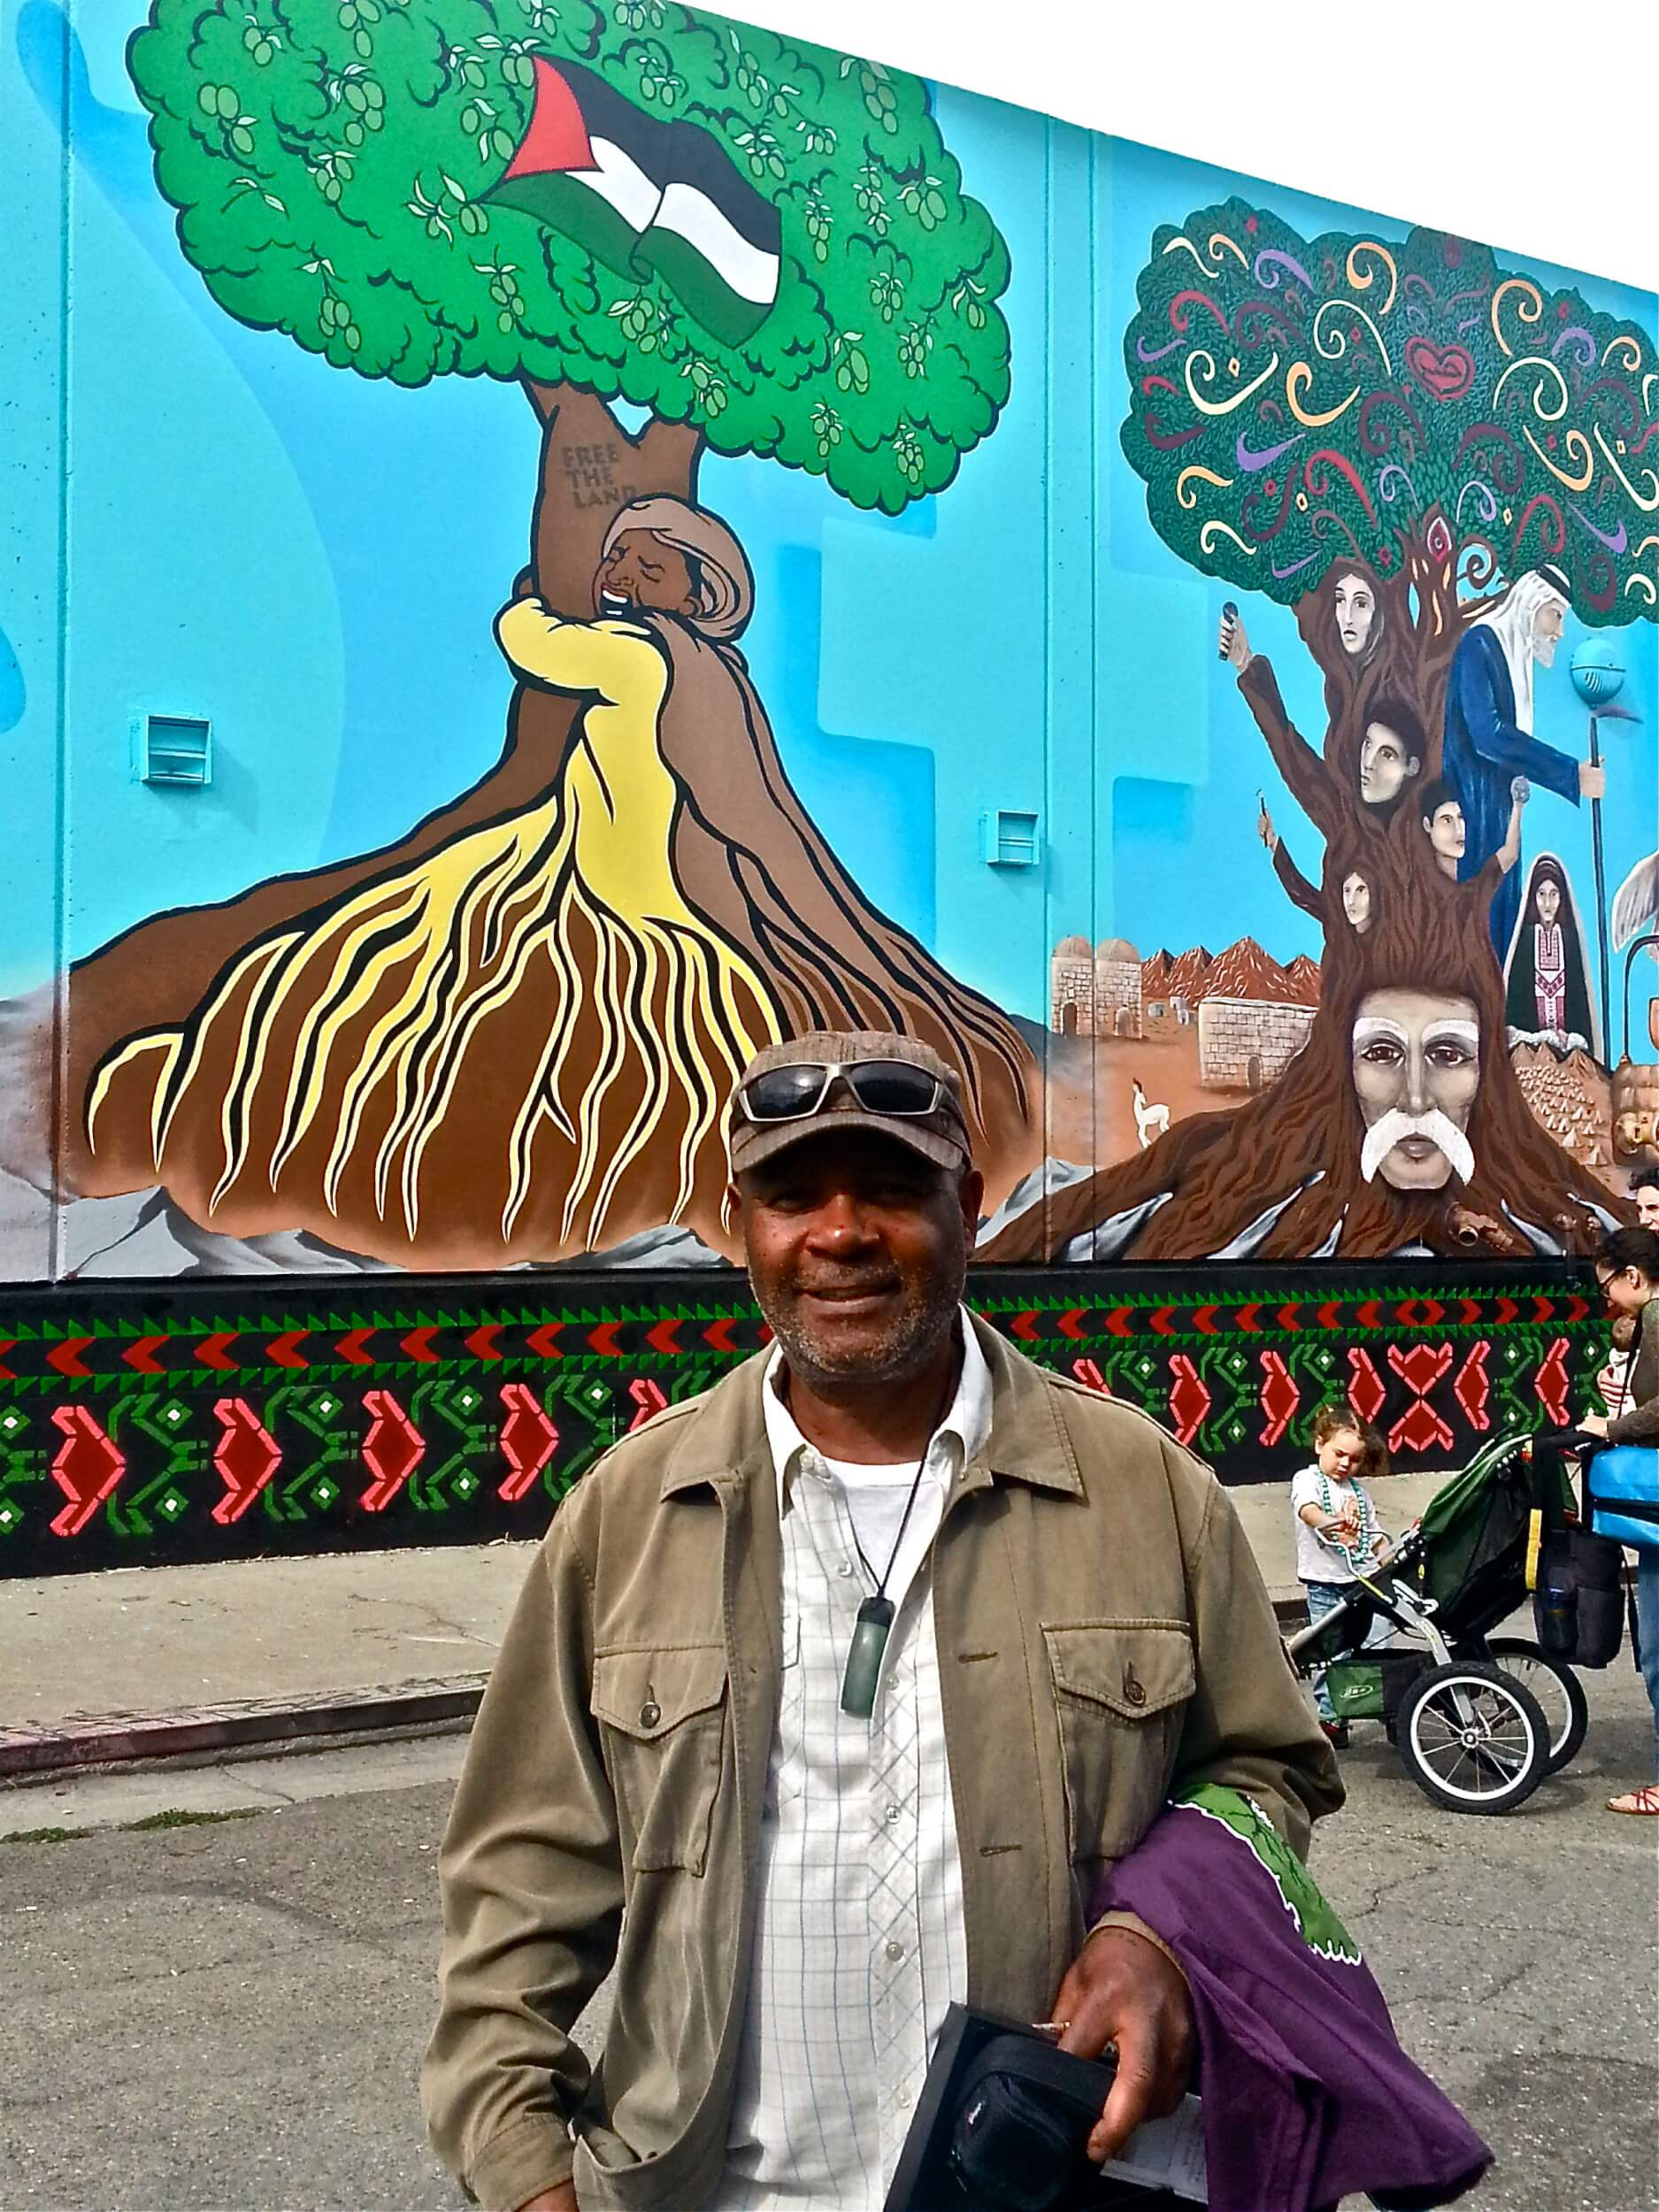 Emory Douglas, renowned former illustrator for The Black Panther newspaper, in front of the panel he contributed to the mural. (Photo: Henry Norr)